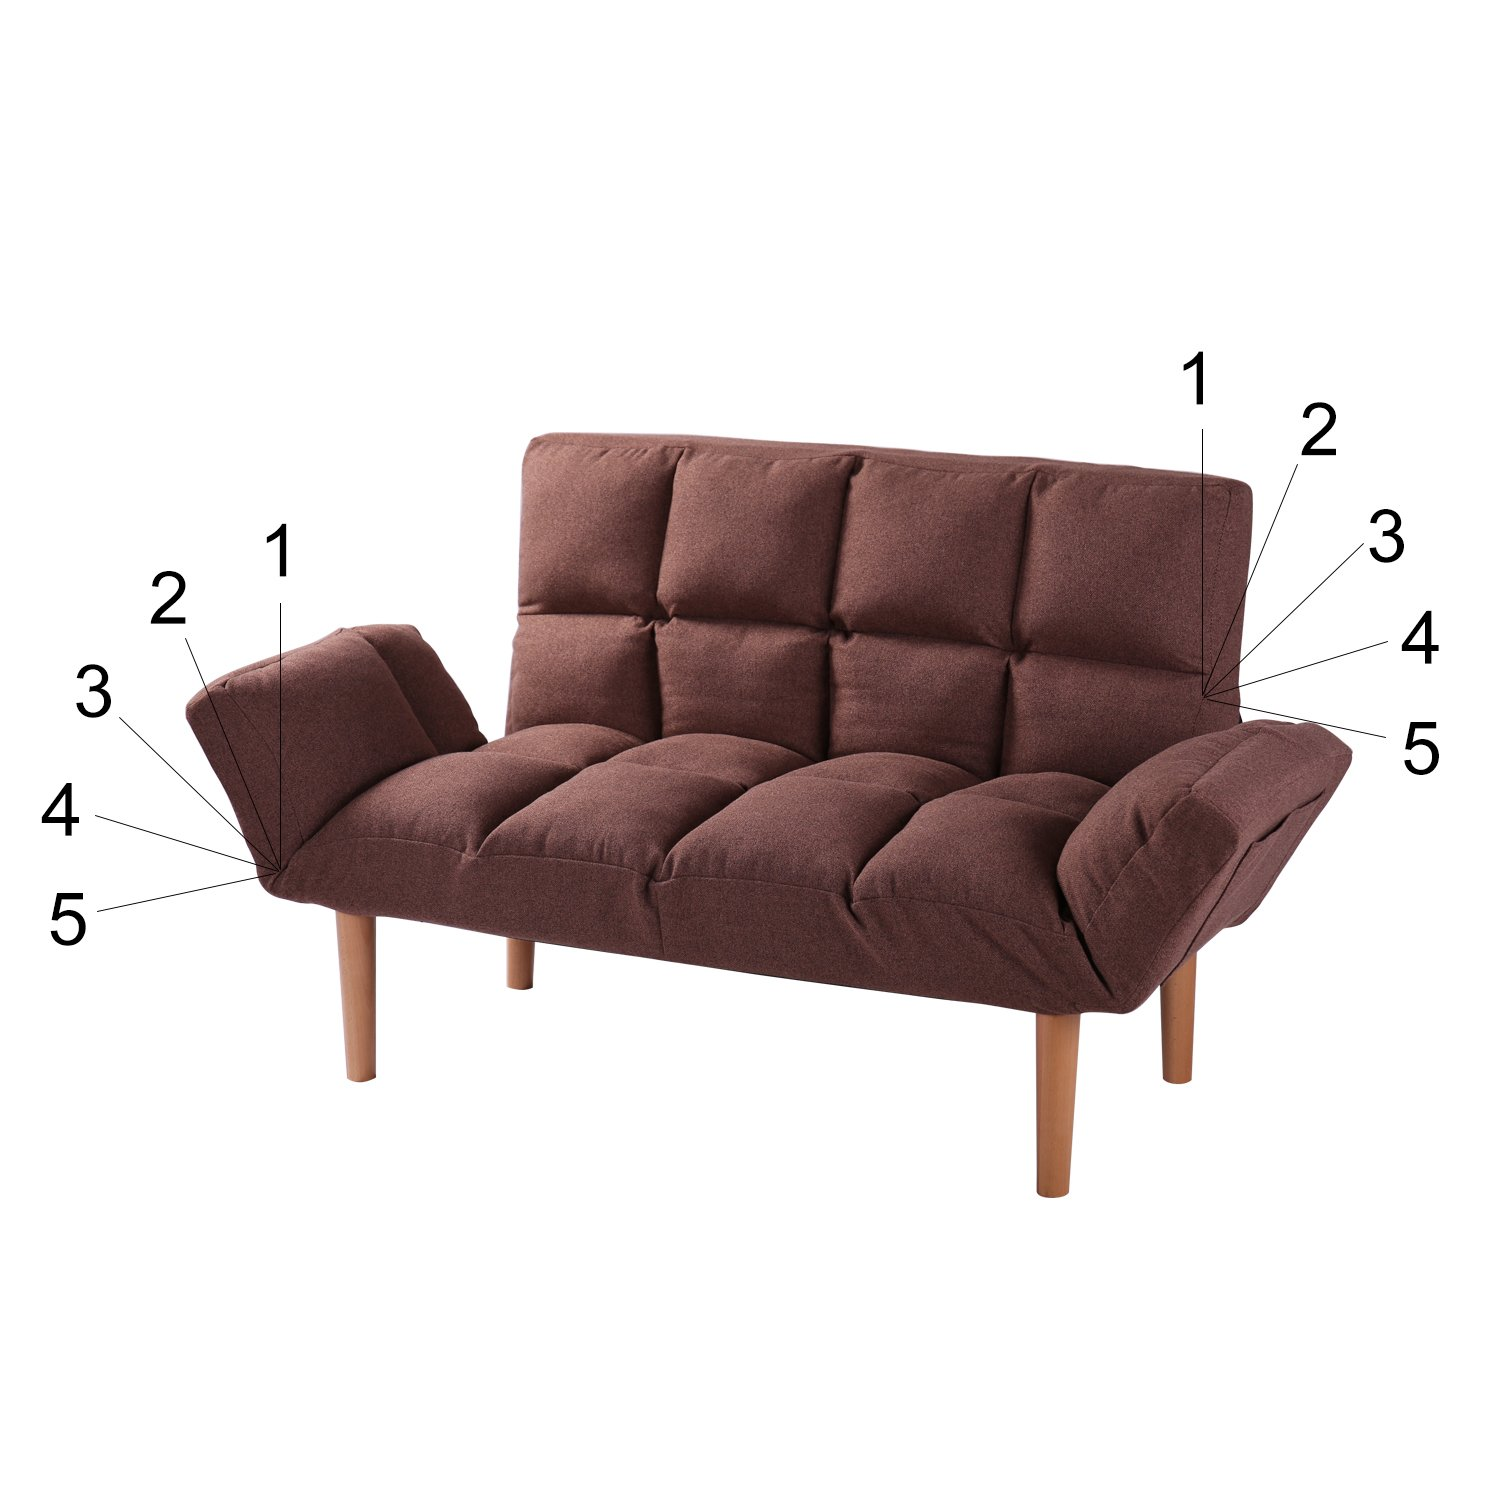 Convertible Loveseat Folding Couch Modern Small Foldable Futon ...